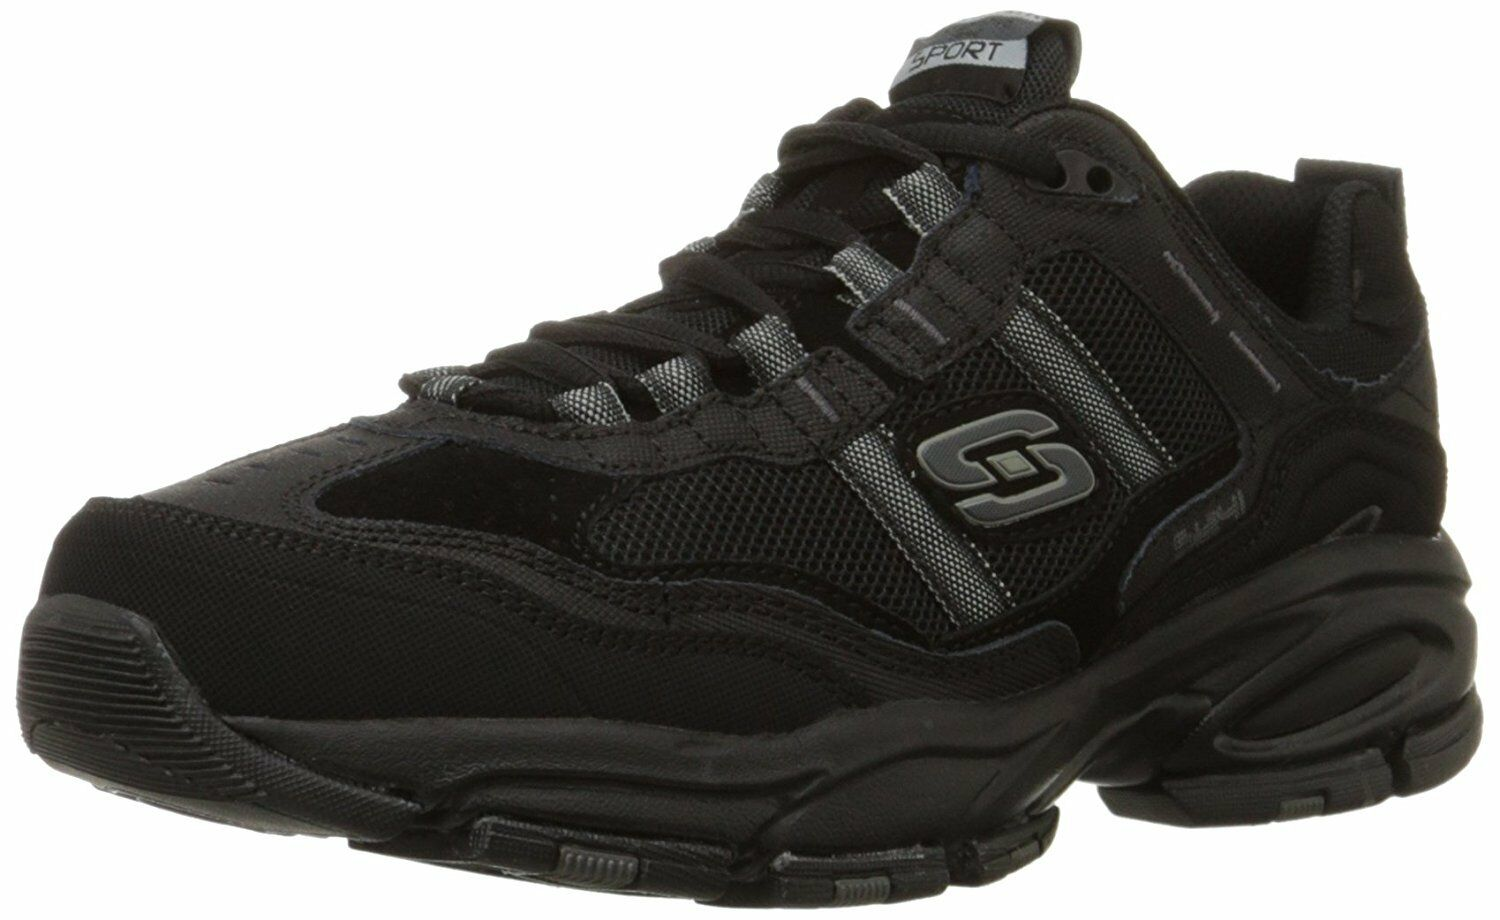 Skechers Sport Mens Vigor 2.0 Trait Memory Foam zapatilla de deporte- Pick SZ Color.